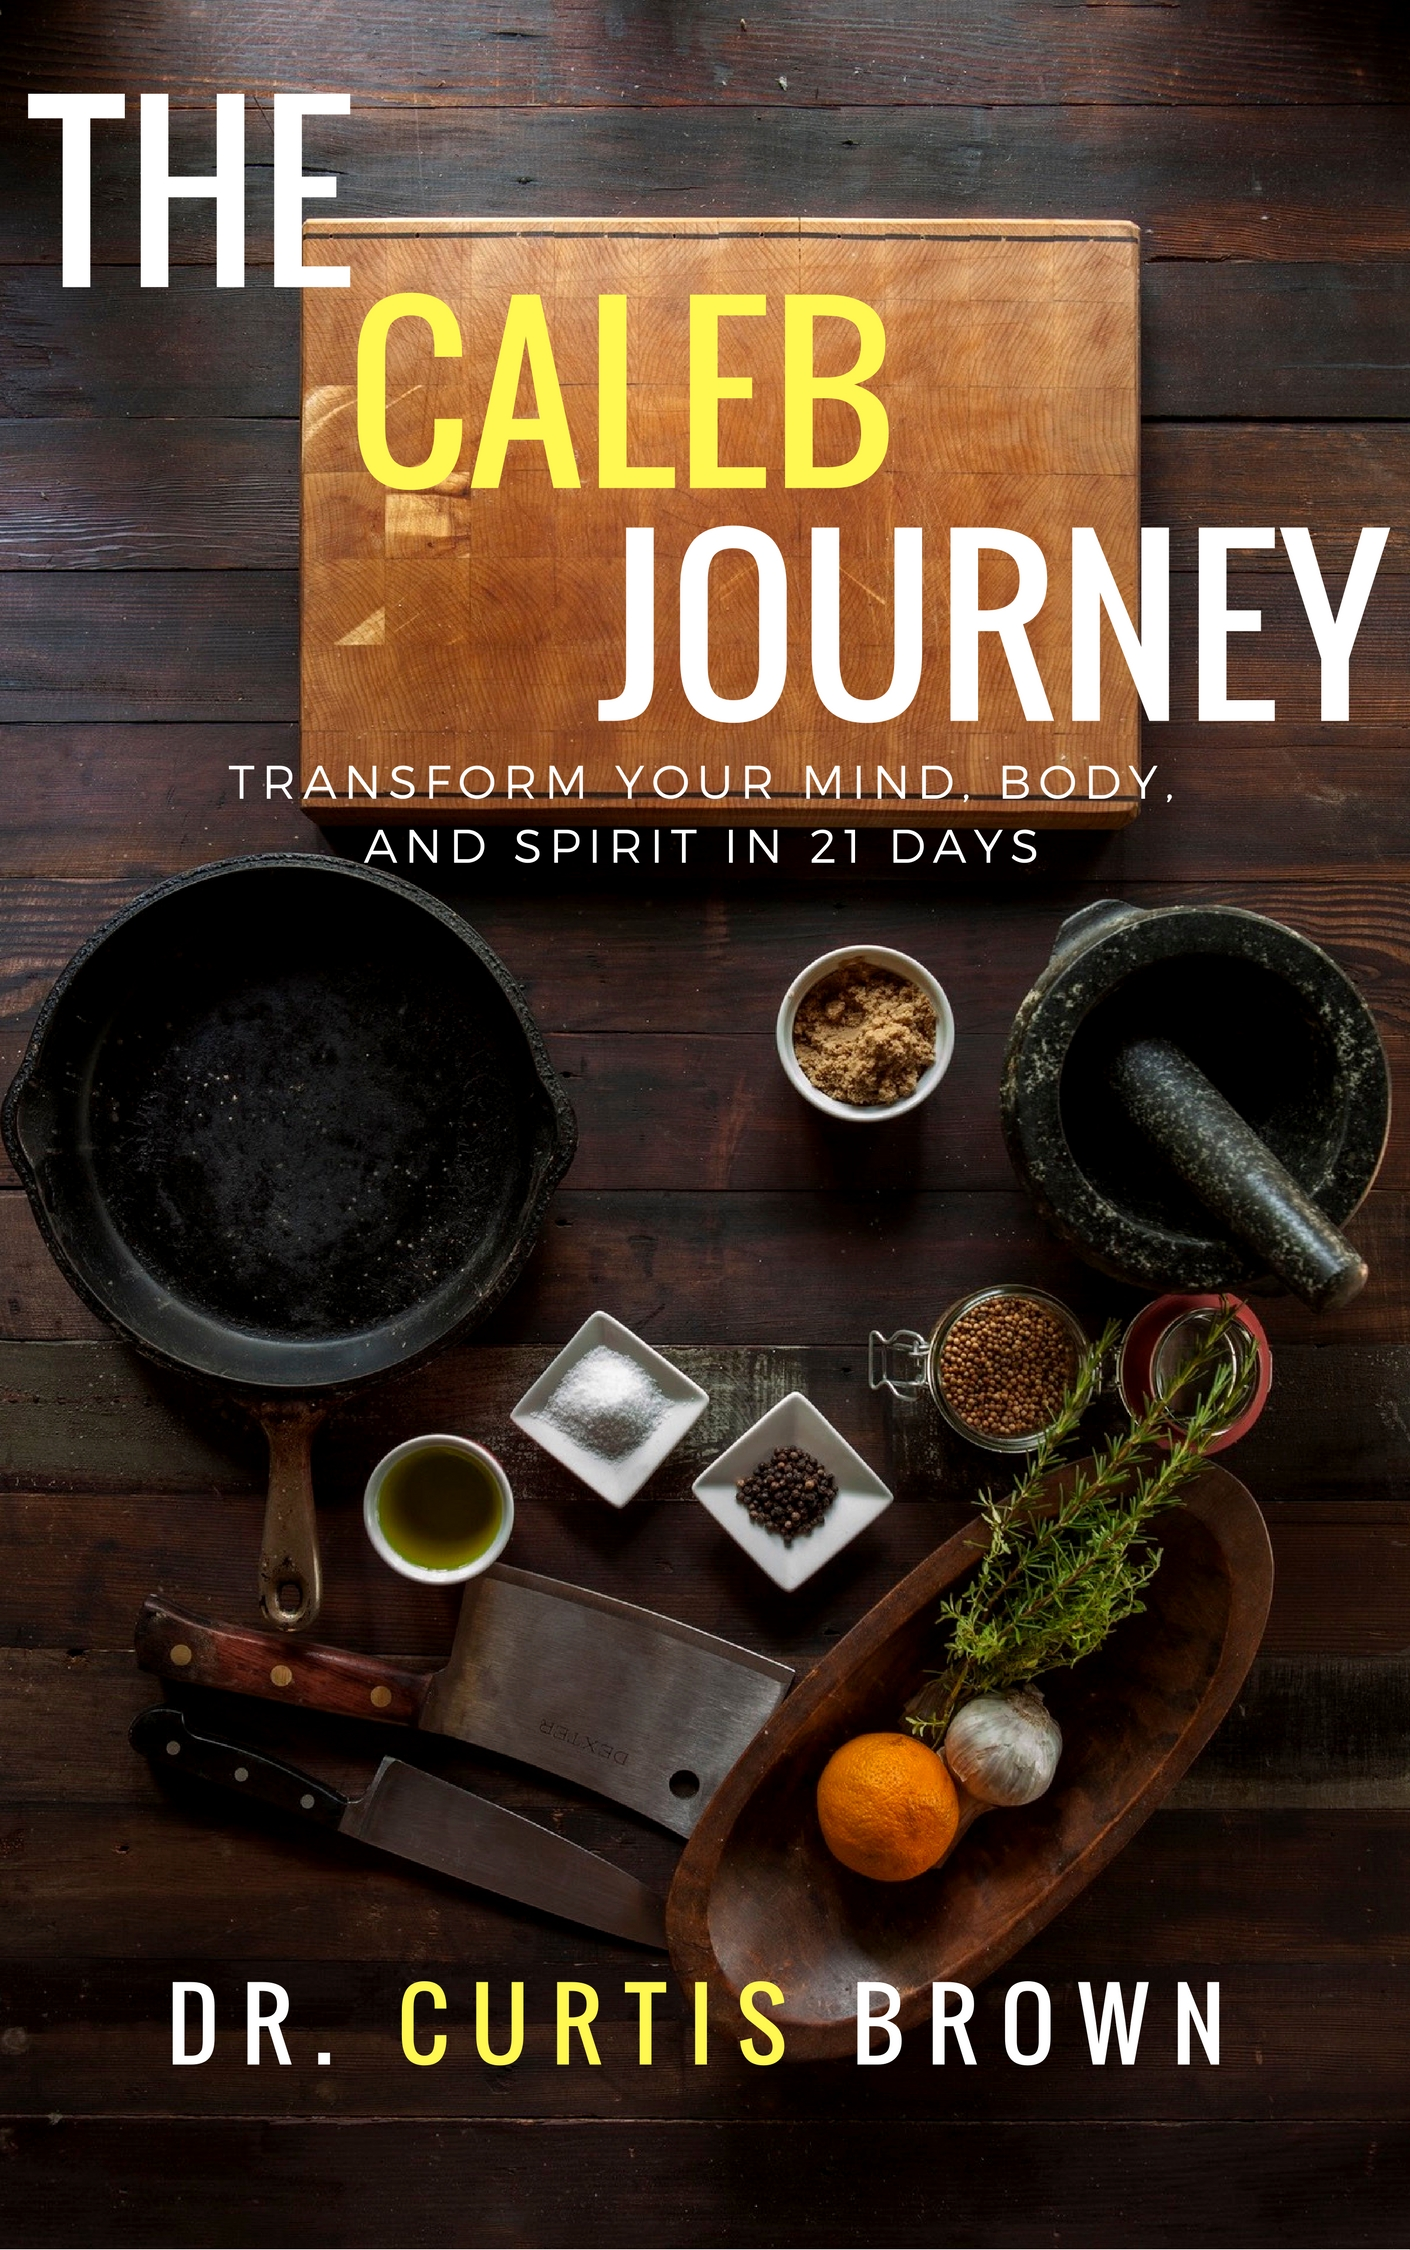 Available on Amazon - A 21-day journey to transform your mind, body, and spirit. Are you ready to maximize your health and wellness and live a life that glorifies God?